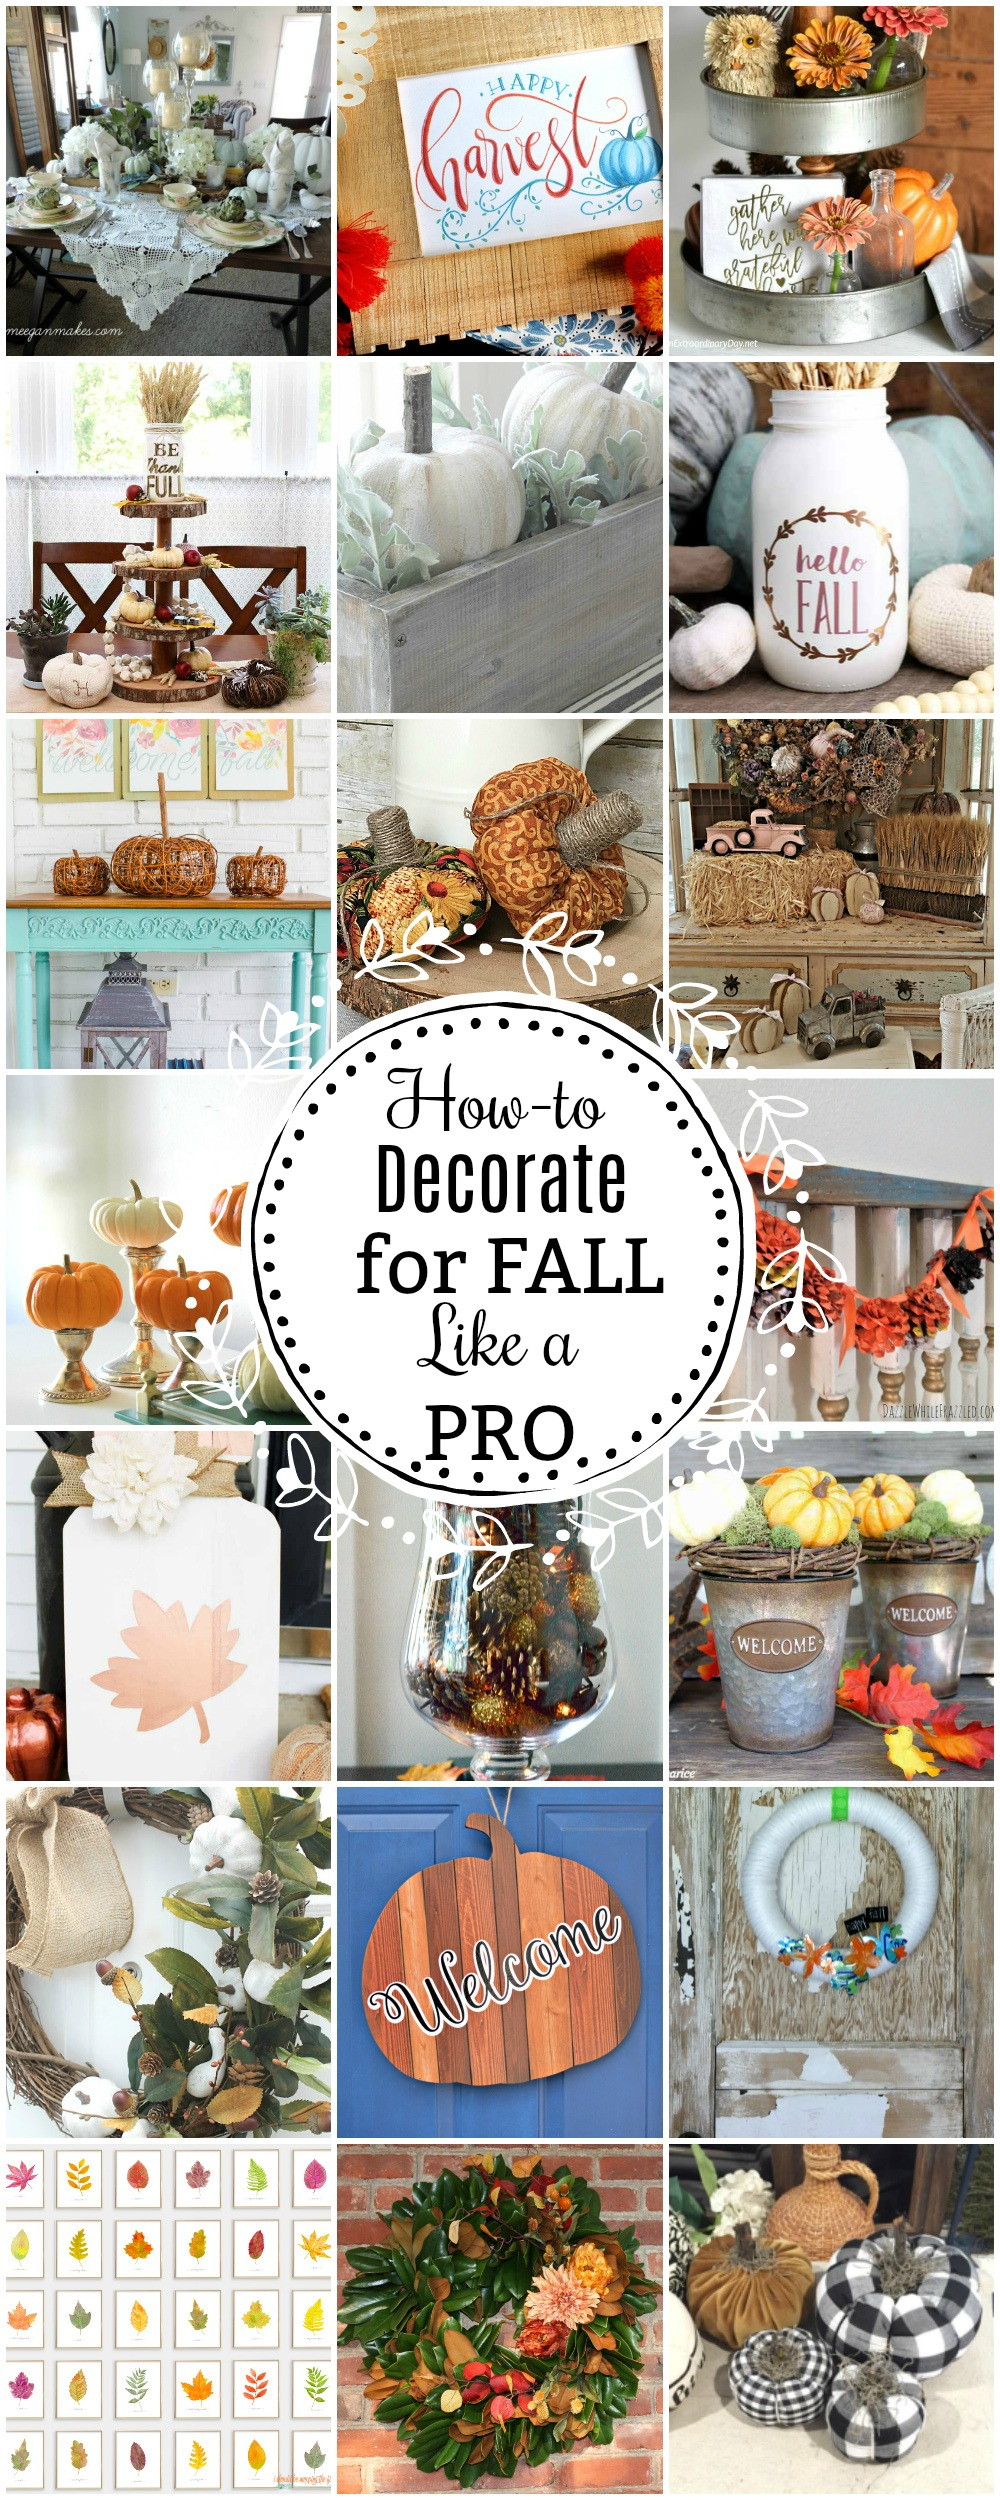 Pro Decorating Tips for Autumn